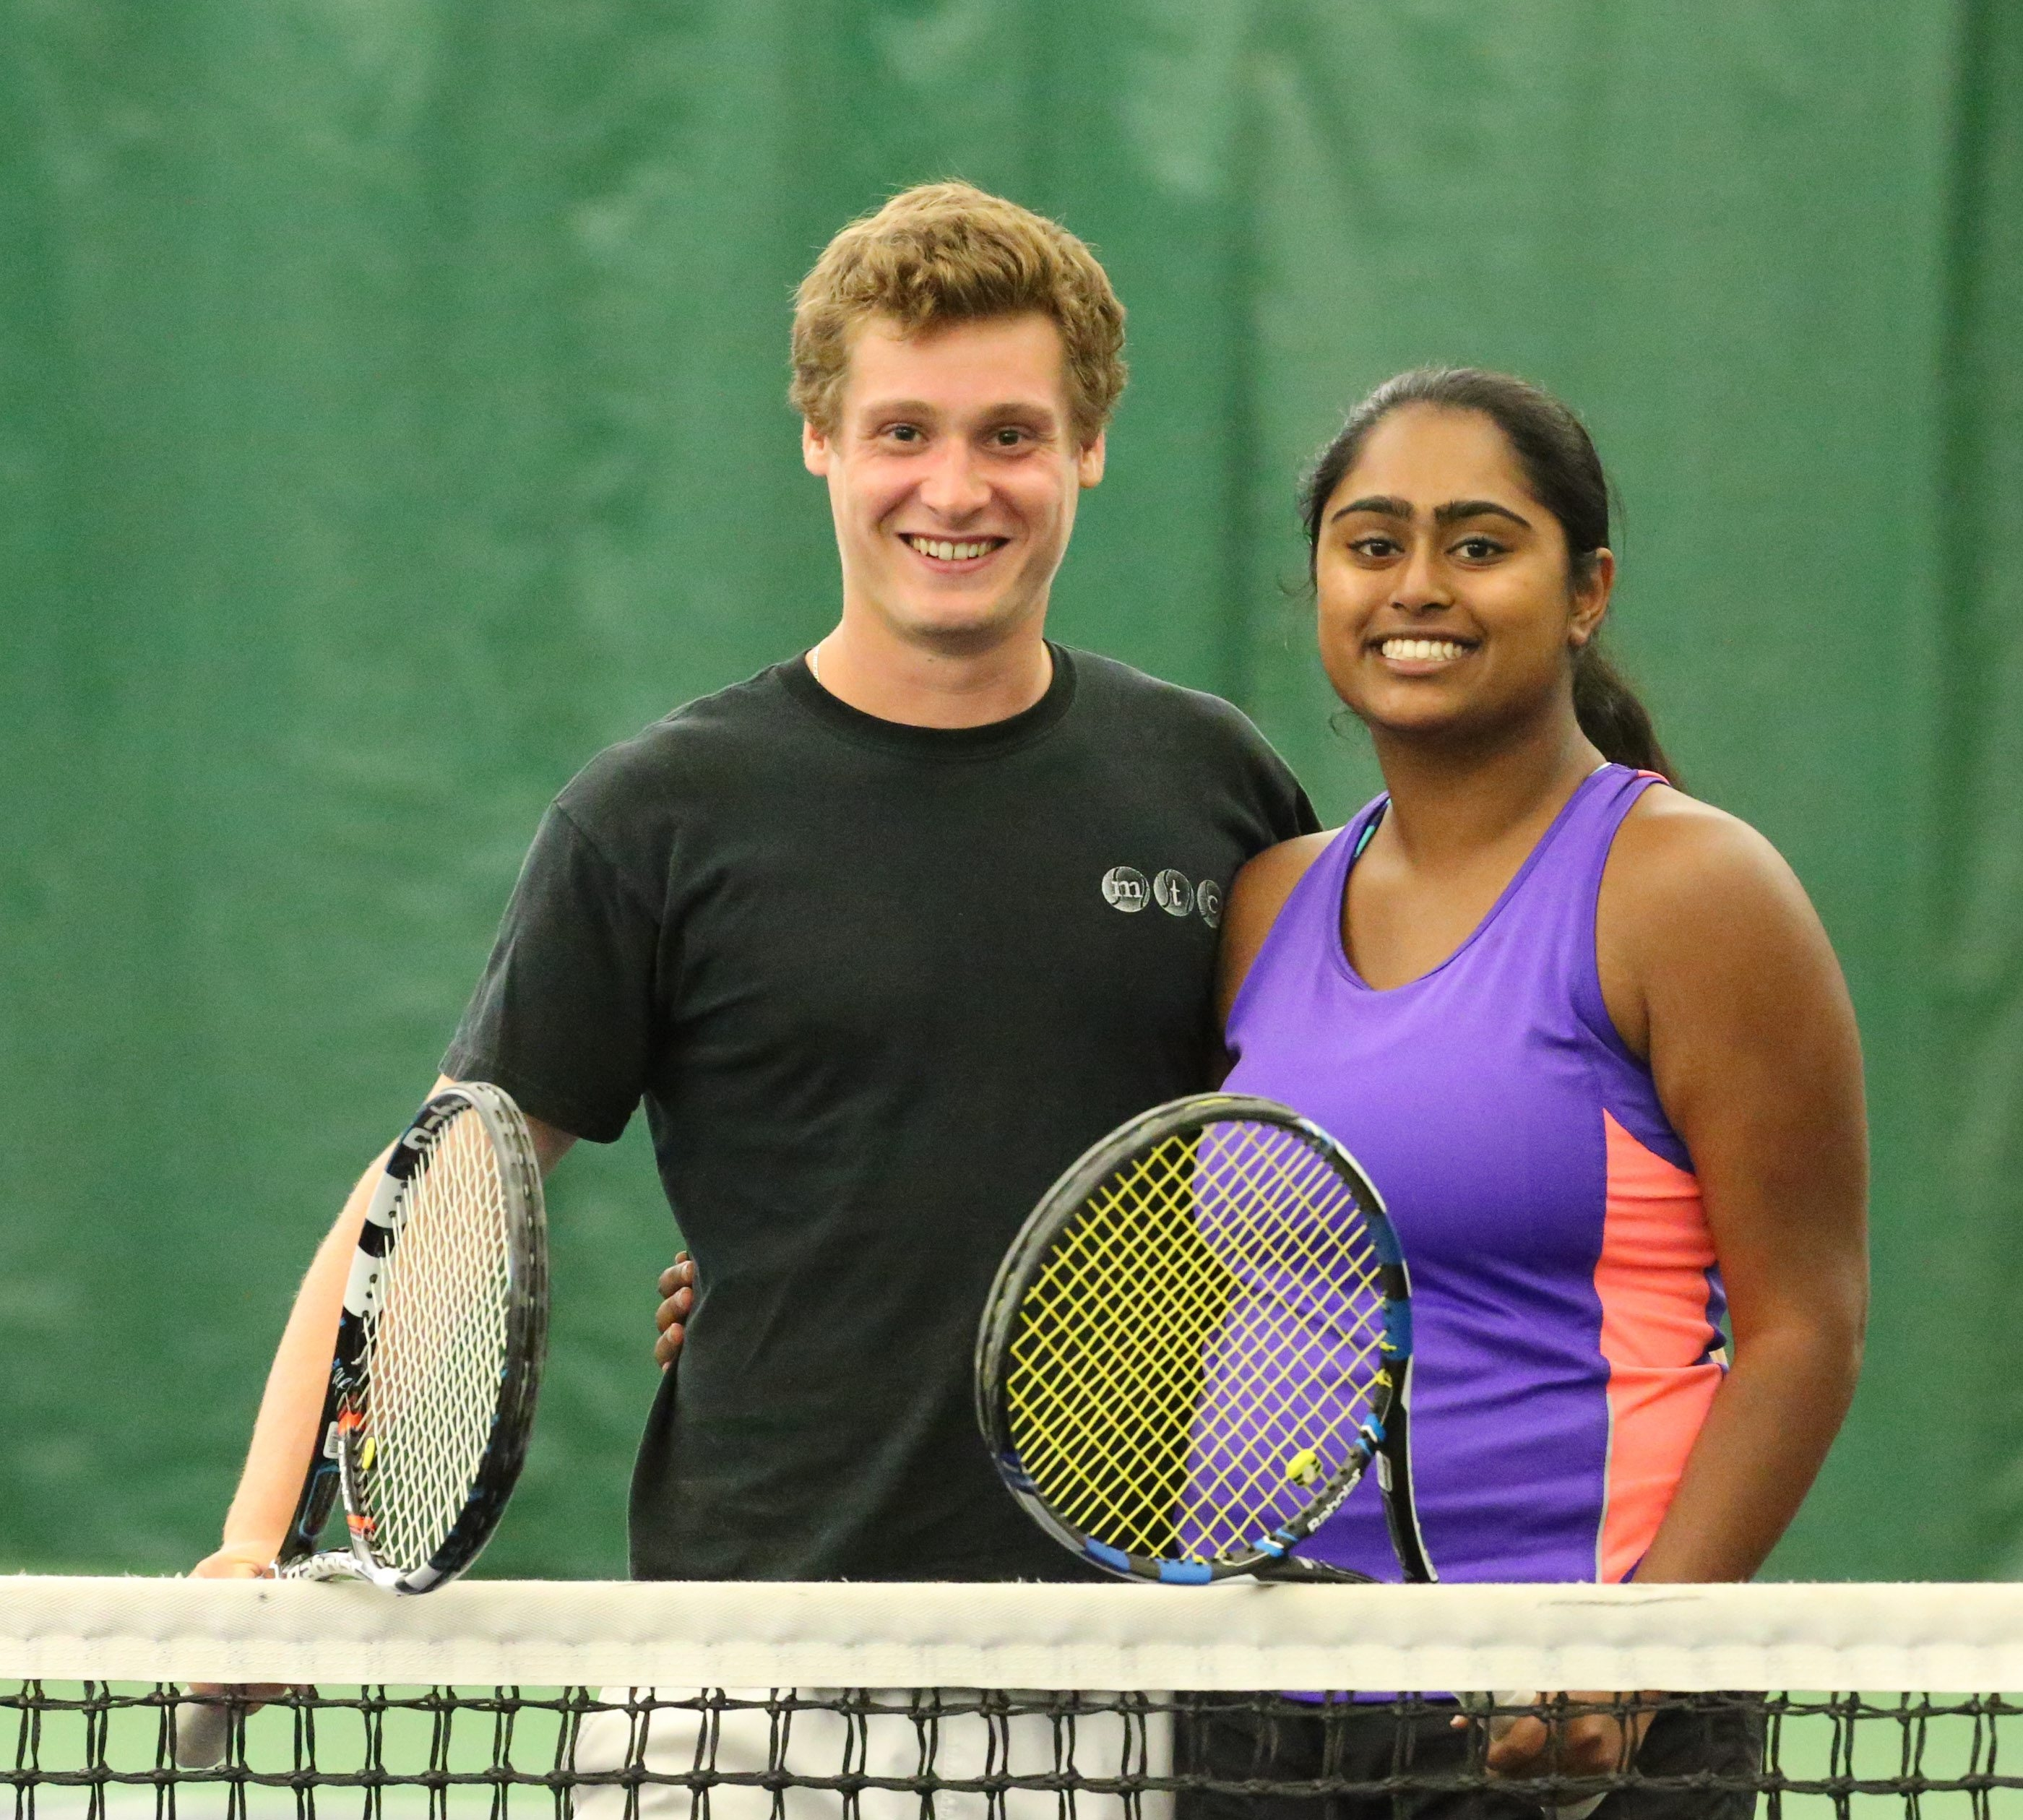 Jonah Epstein of Skidmore College is Muny singles champ along with Disha Yellayi, who is headed to Hofstra. Both attended Nichols School.